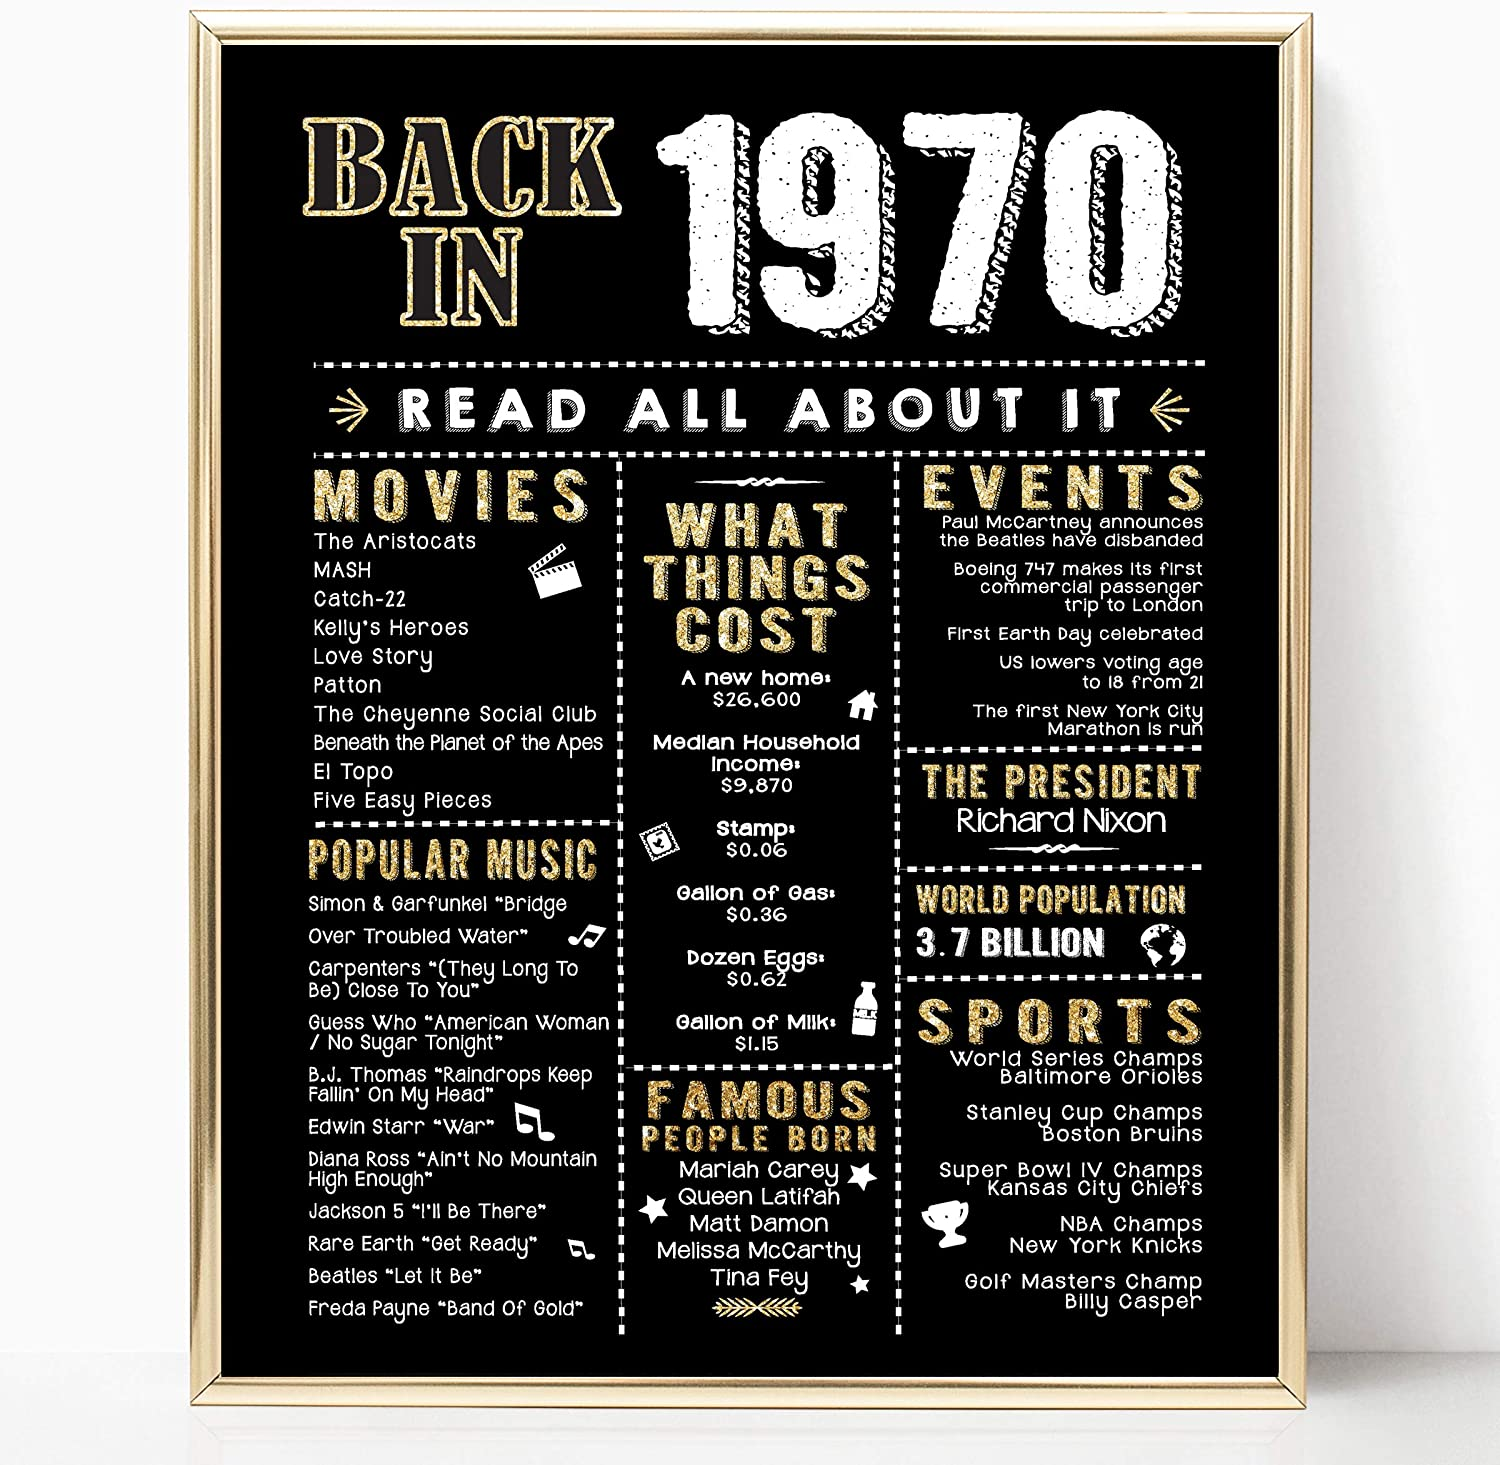 Katie Doodle 50th Birthday Decorations Gifts For Women Or Men Includes 8x10 Back In 1969 Sign Unframed Bd050 Black Gold Amazon Ca Home Kitchen